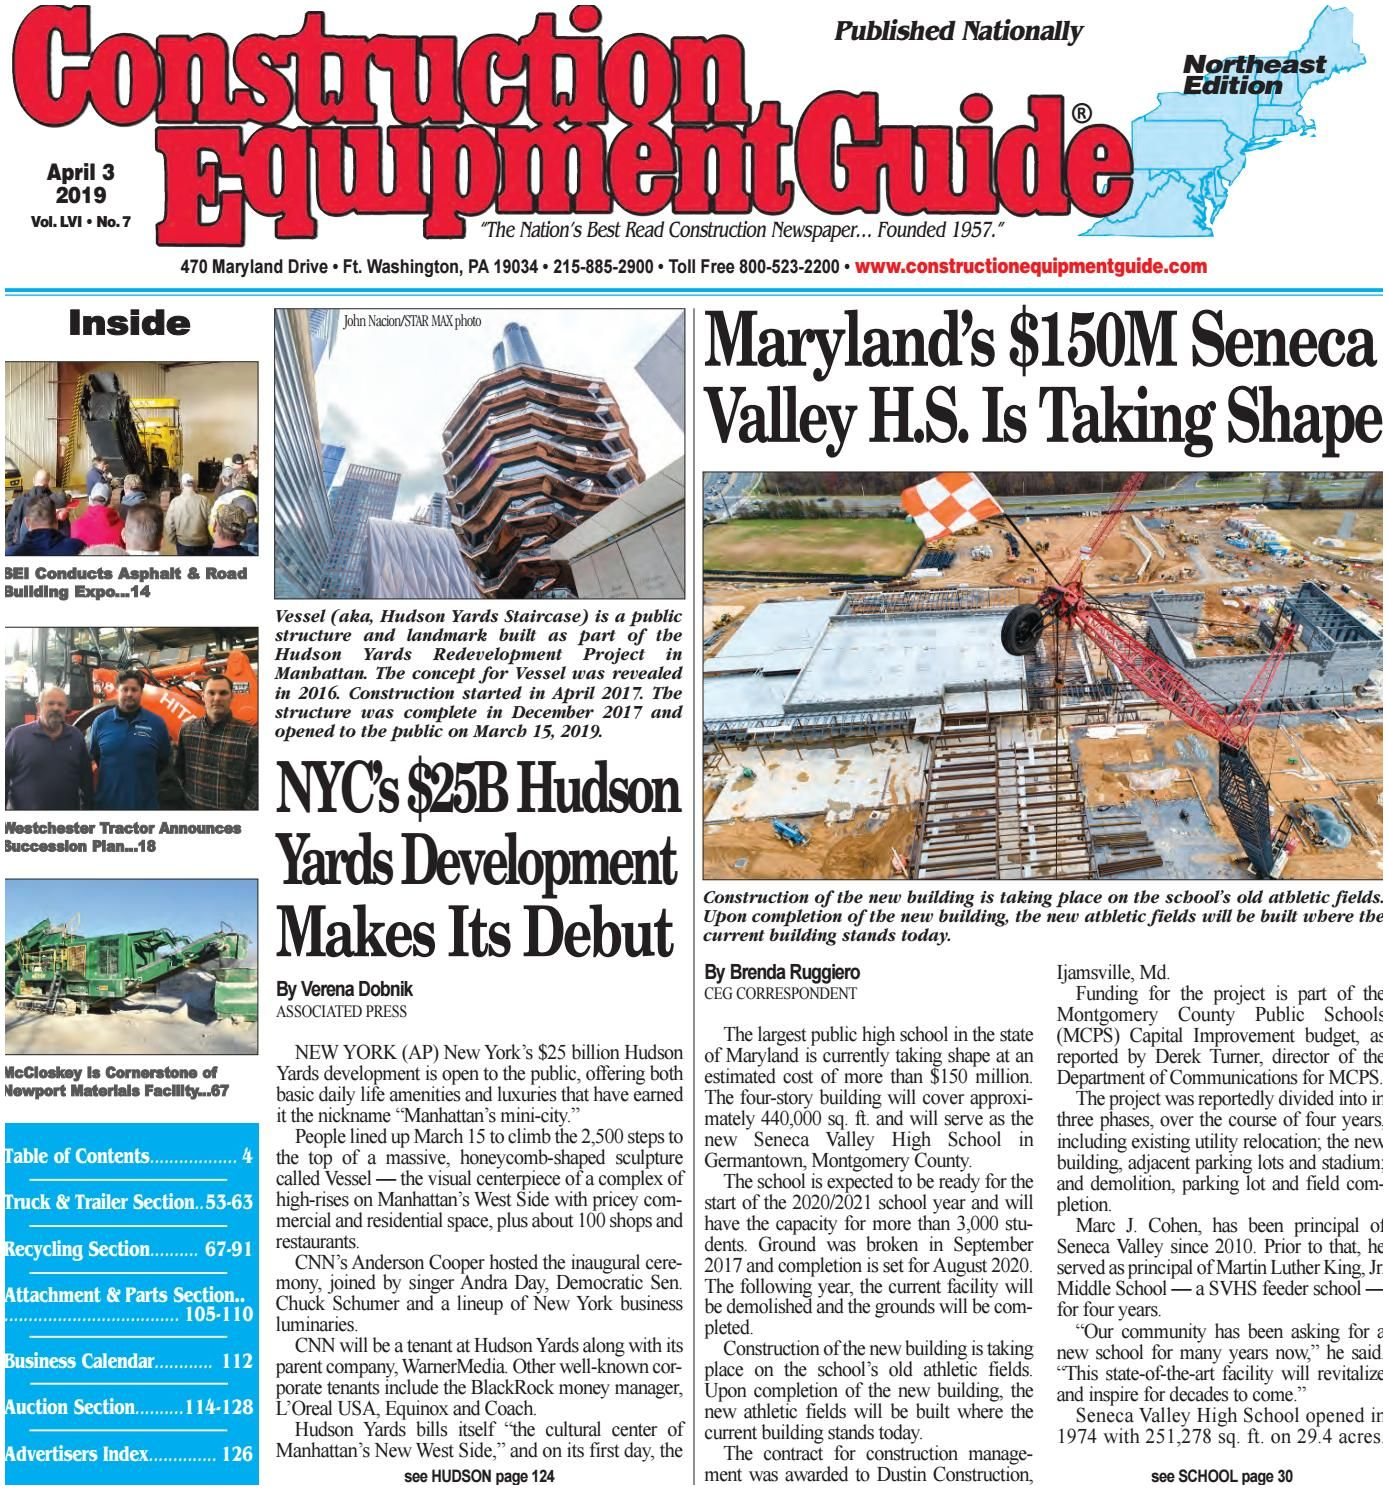 Athletic Business Magazine northeast 7 April 3 2019 by Construction Equipment Guide issuu